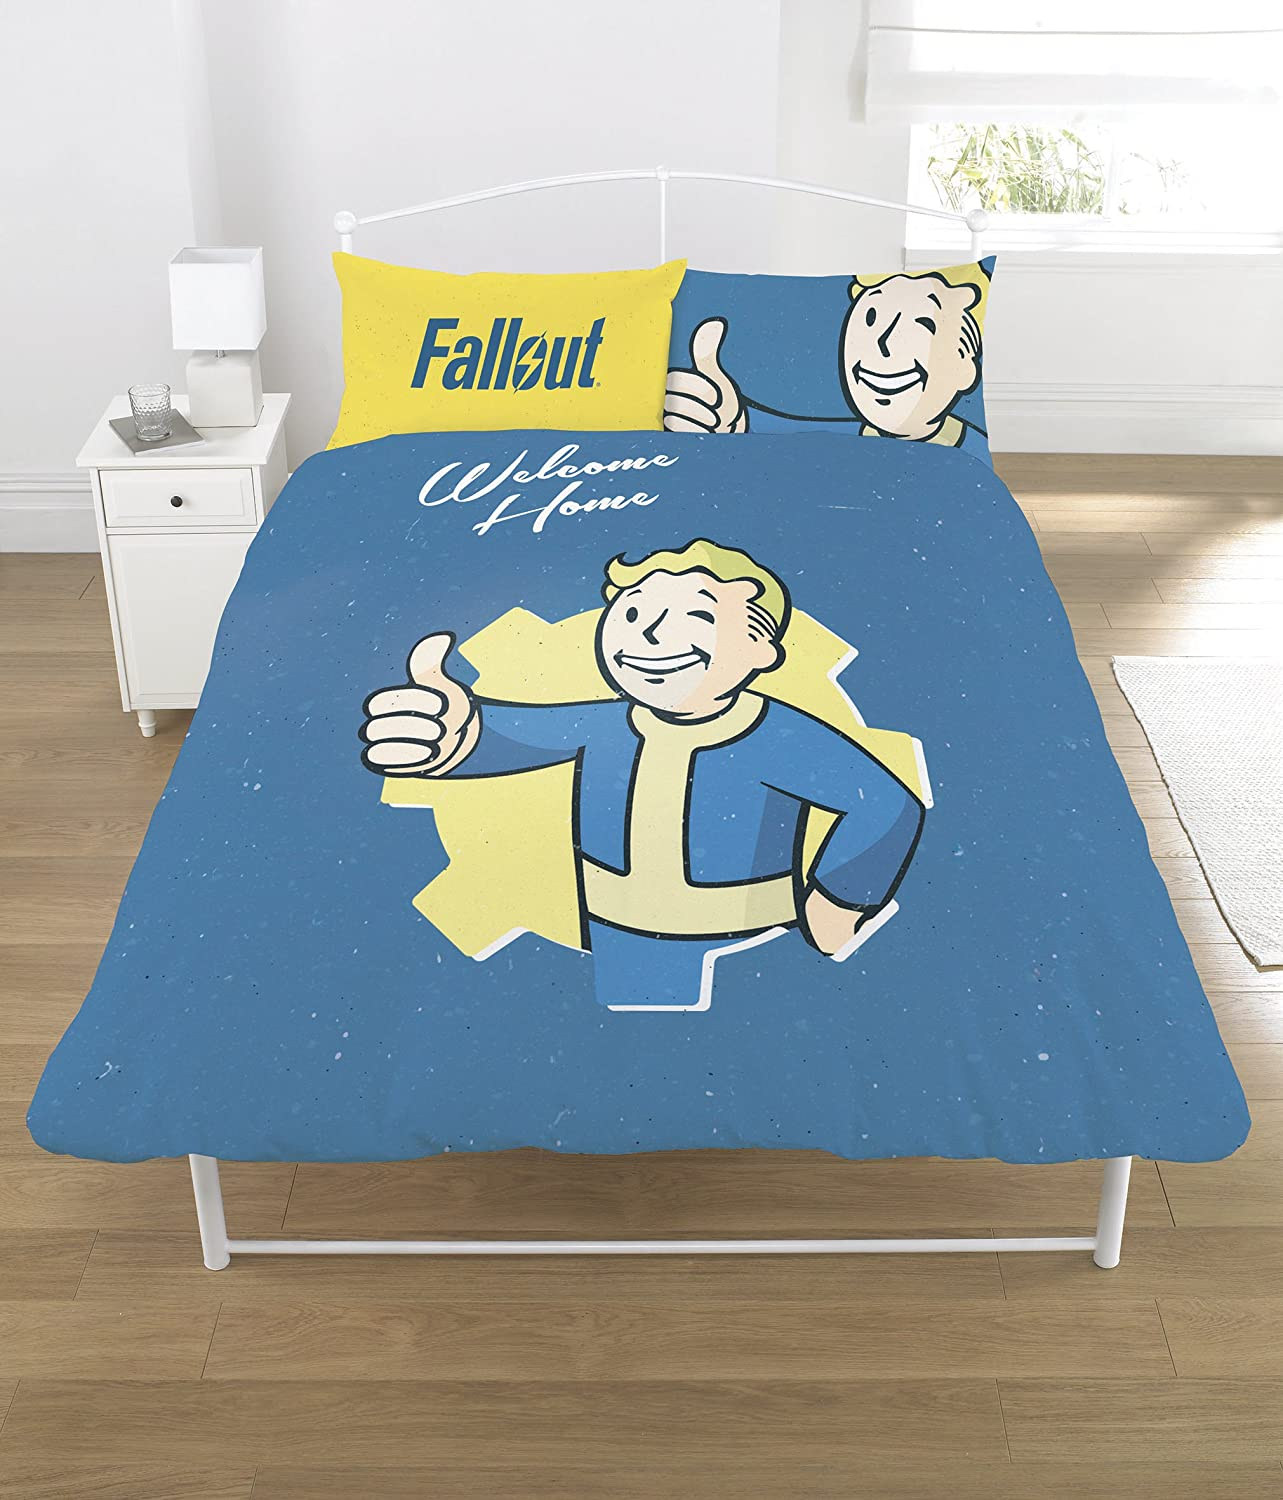 FALLOUT Duvet Set, Polycotton, Multi-Colour, Double Dreamtex Ltd DP1-FLT-VTB-08